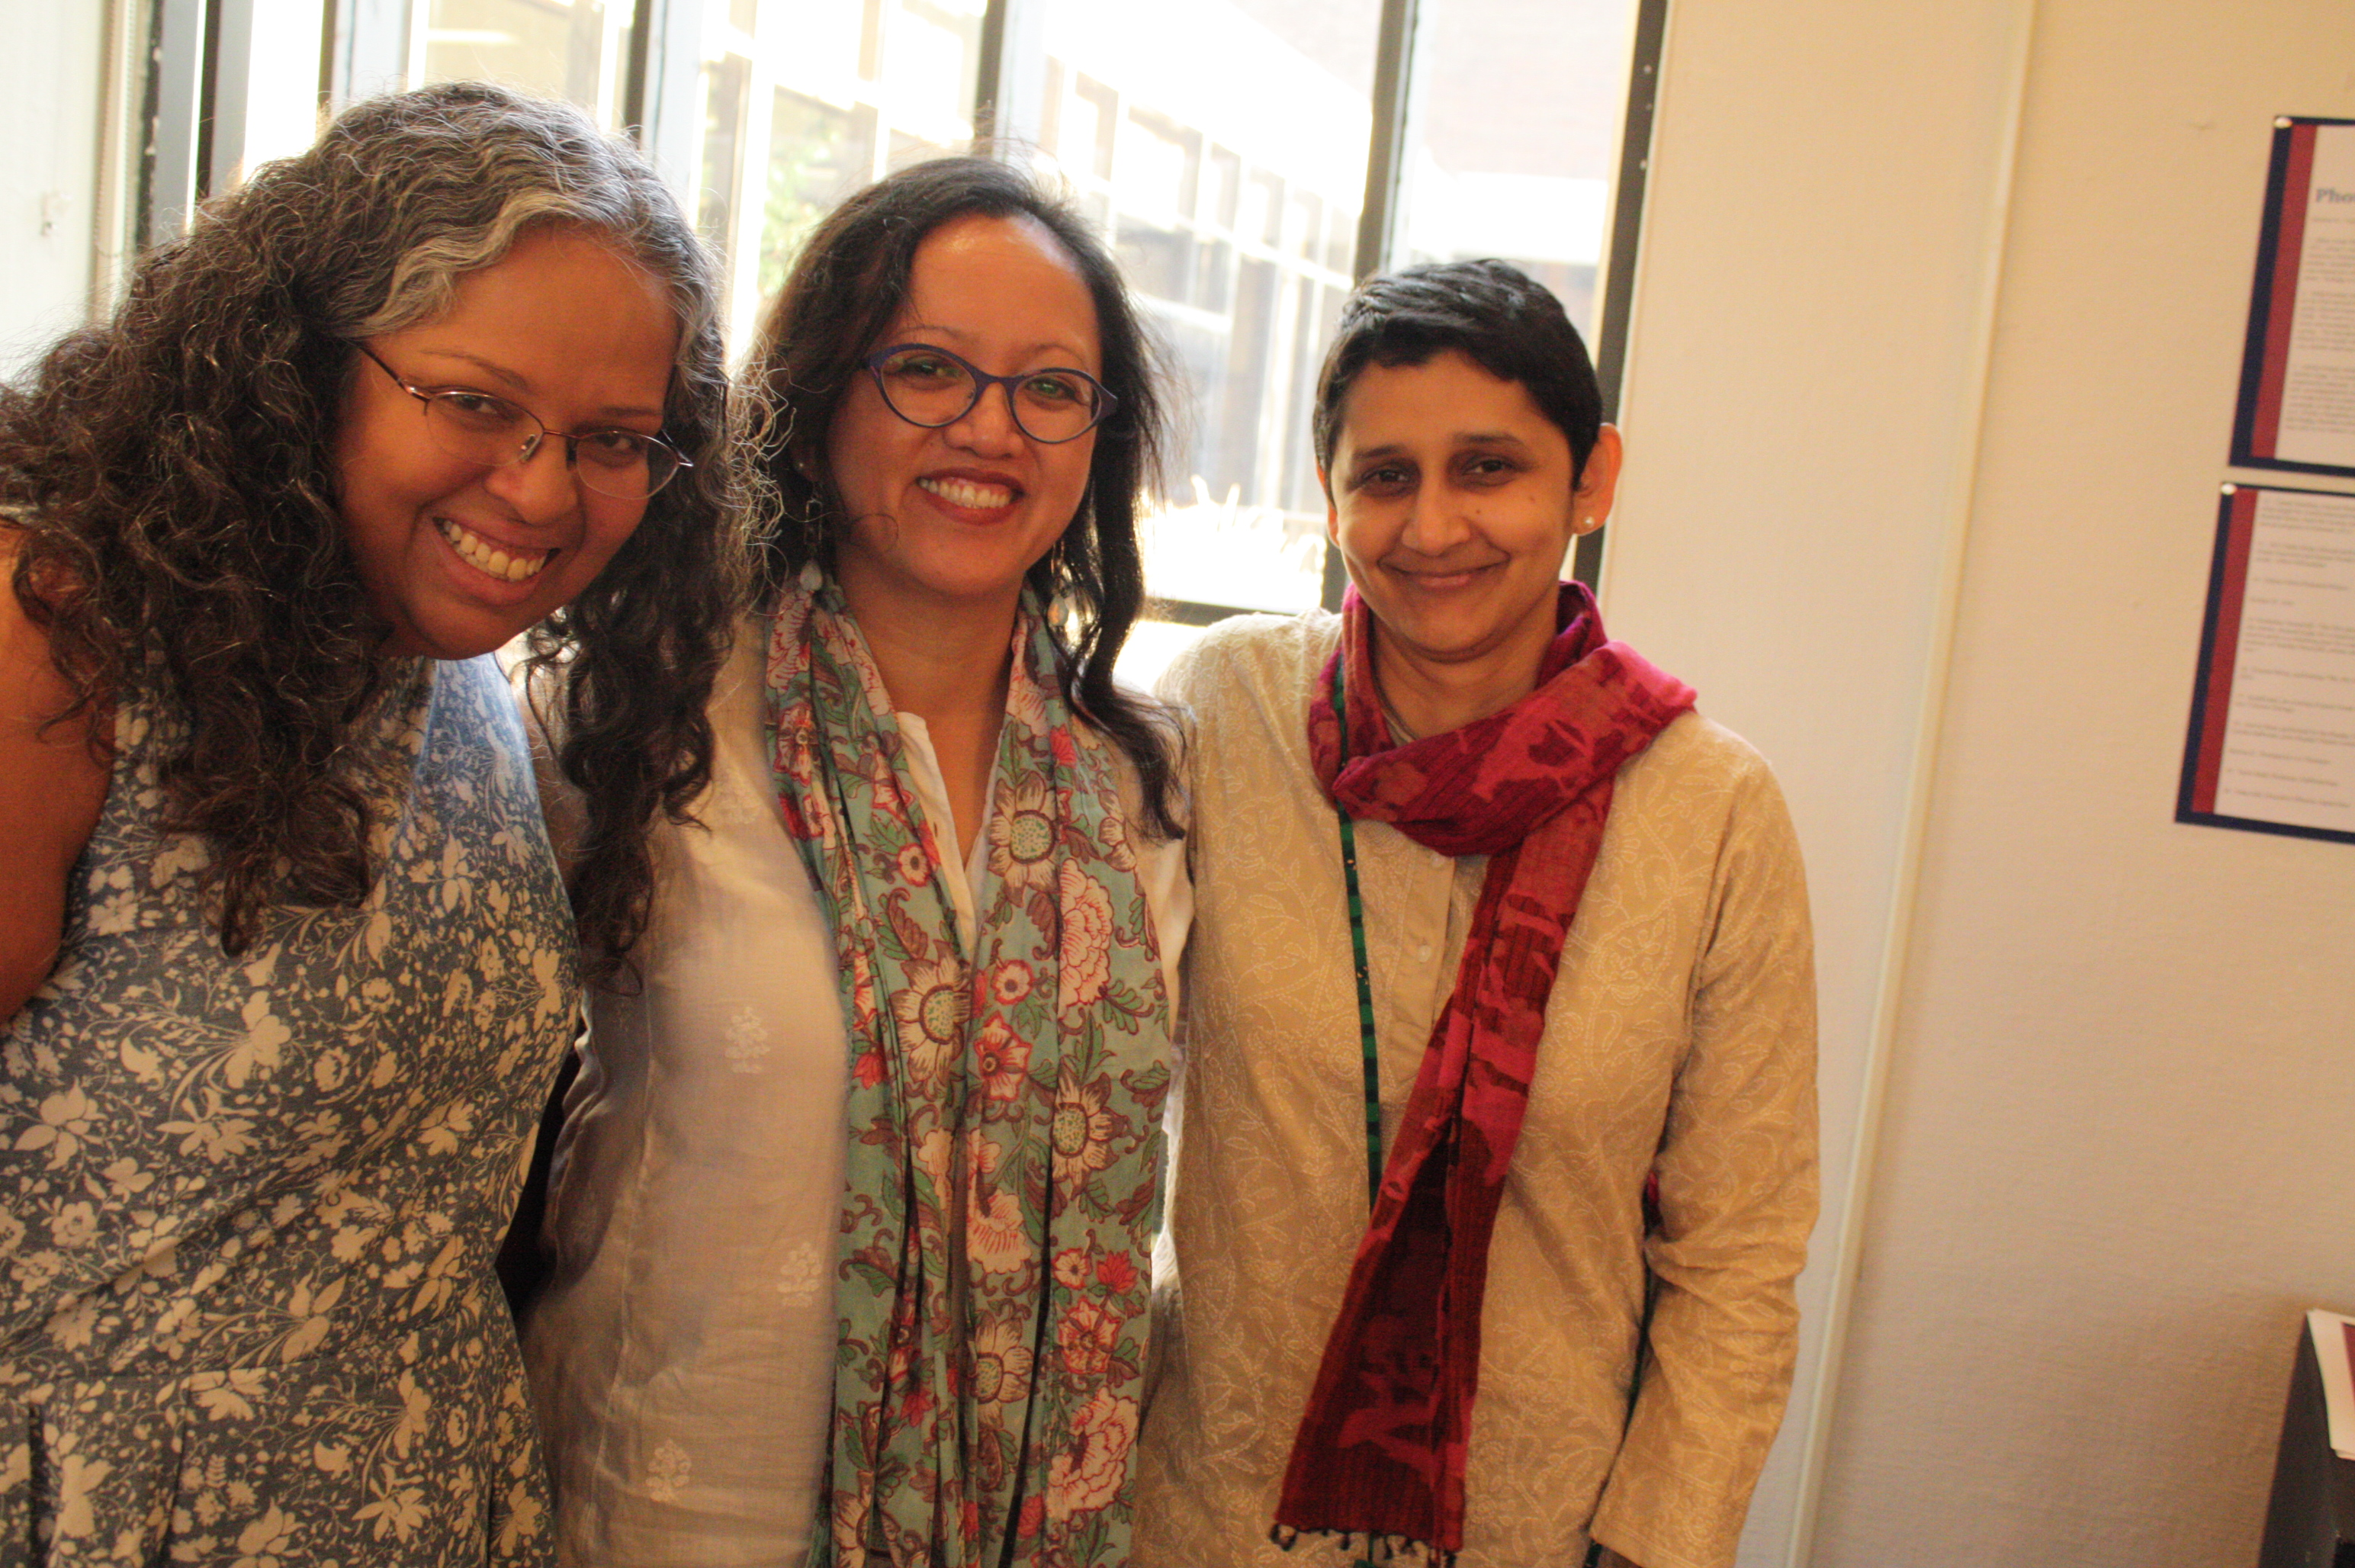 (left to right) Mary Anne Mohanraj, festival director, Anna Guevarra, professor of Asian American studies, and Gayatri Reddy, professor of Asian studies, at the opening night reception